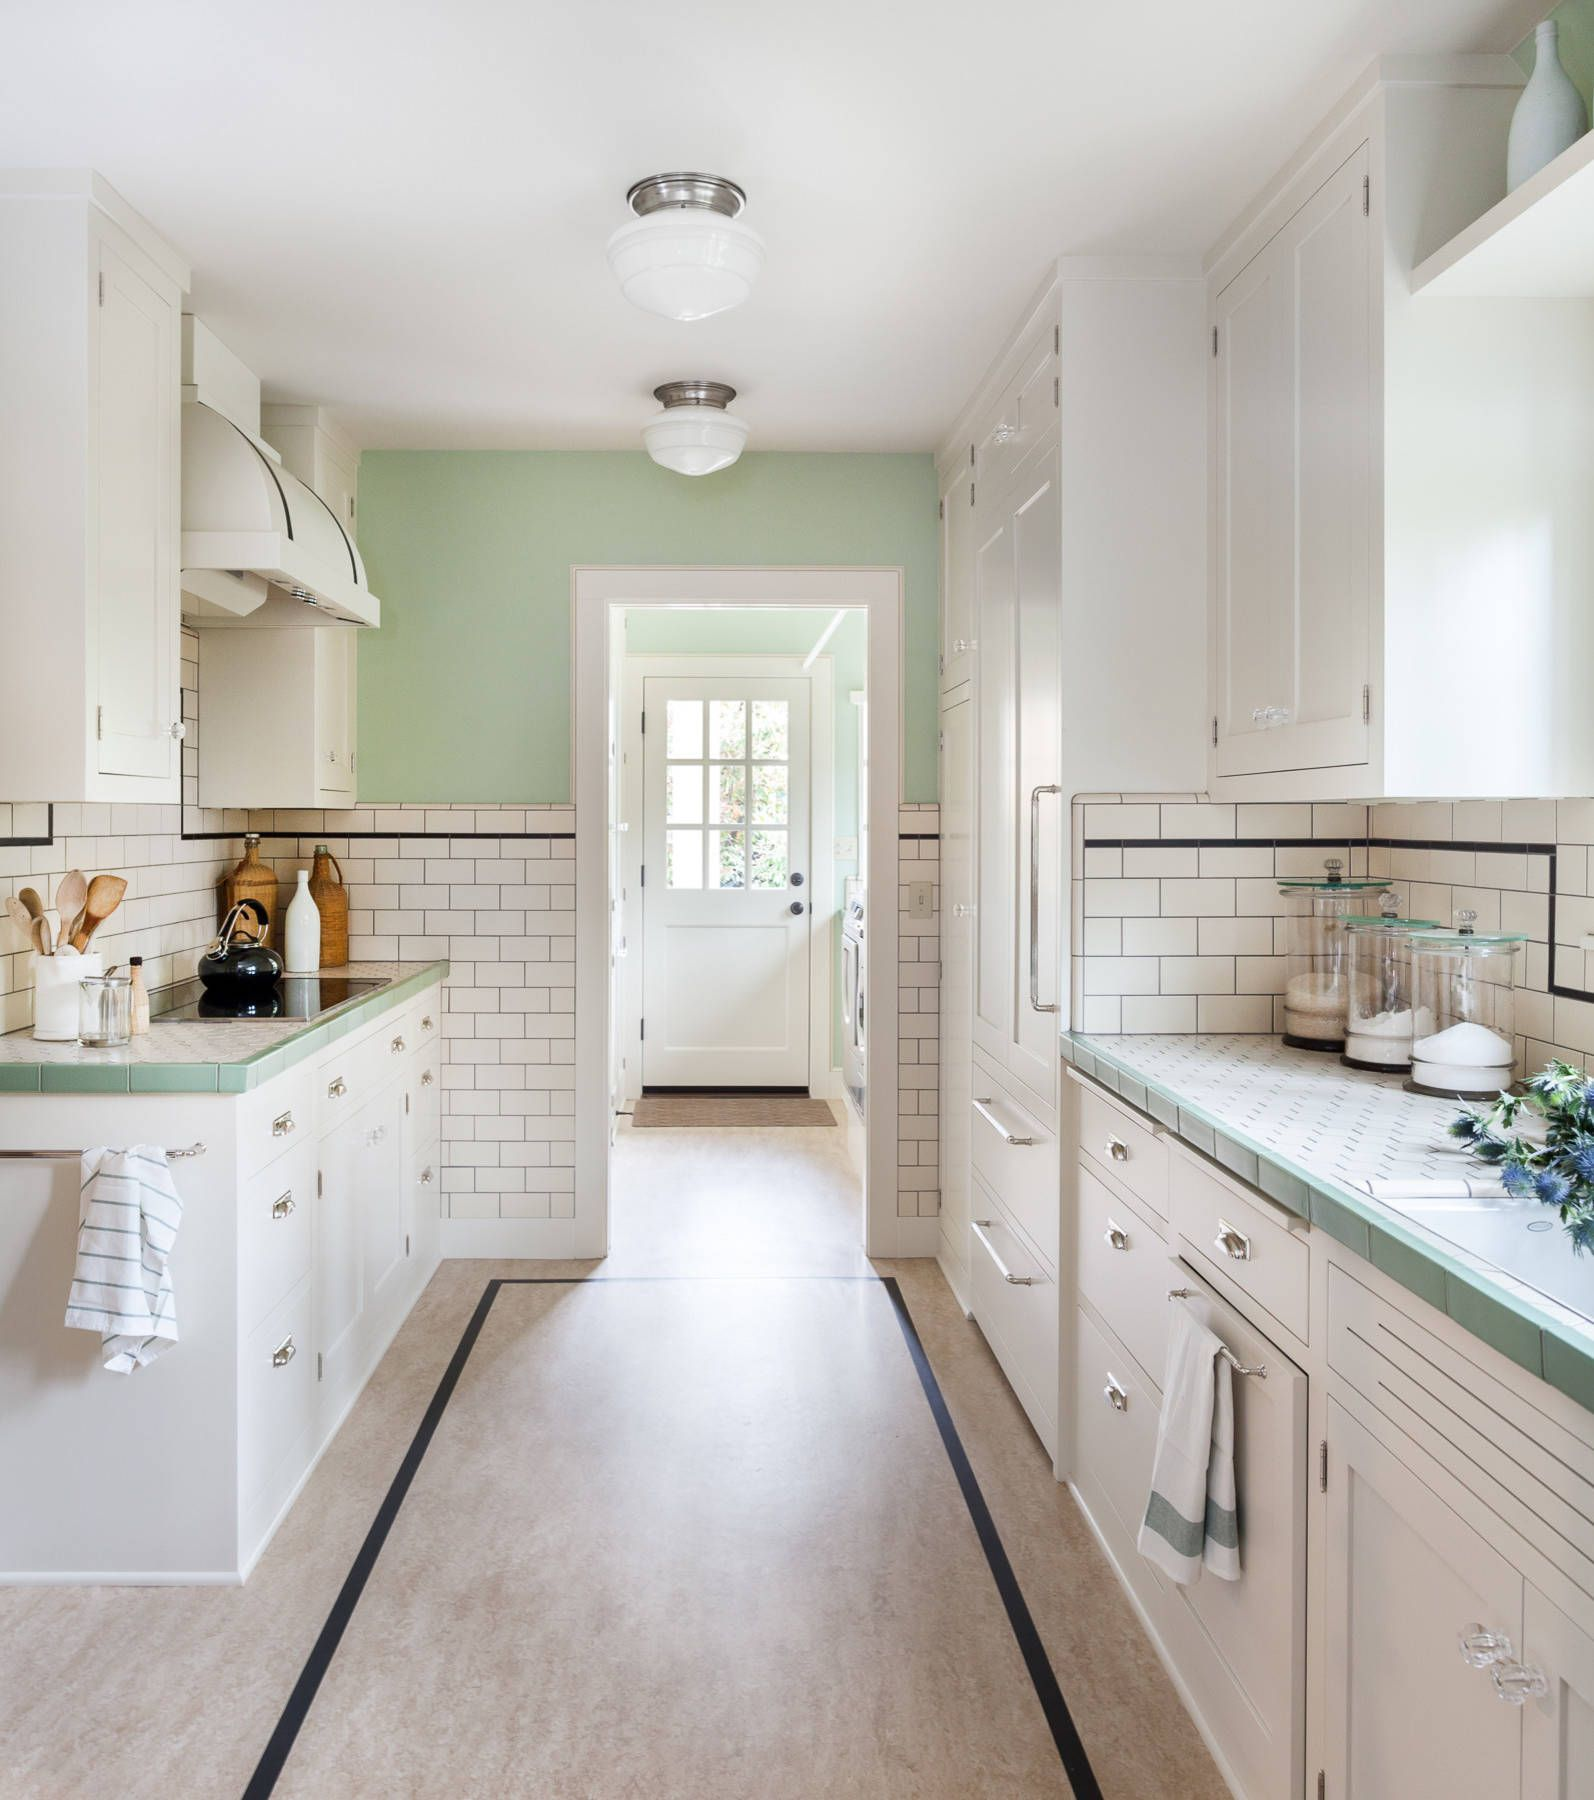 Green Brown Kitchen Ideas: The Case To Paint Your Whole House Mint Green